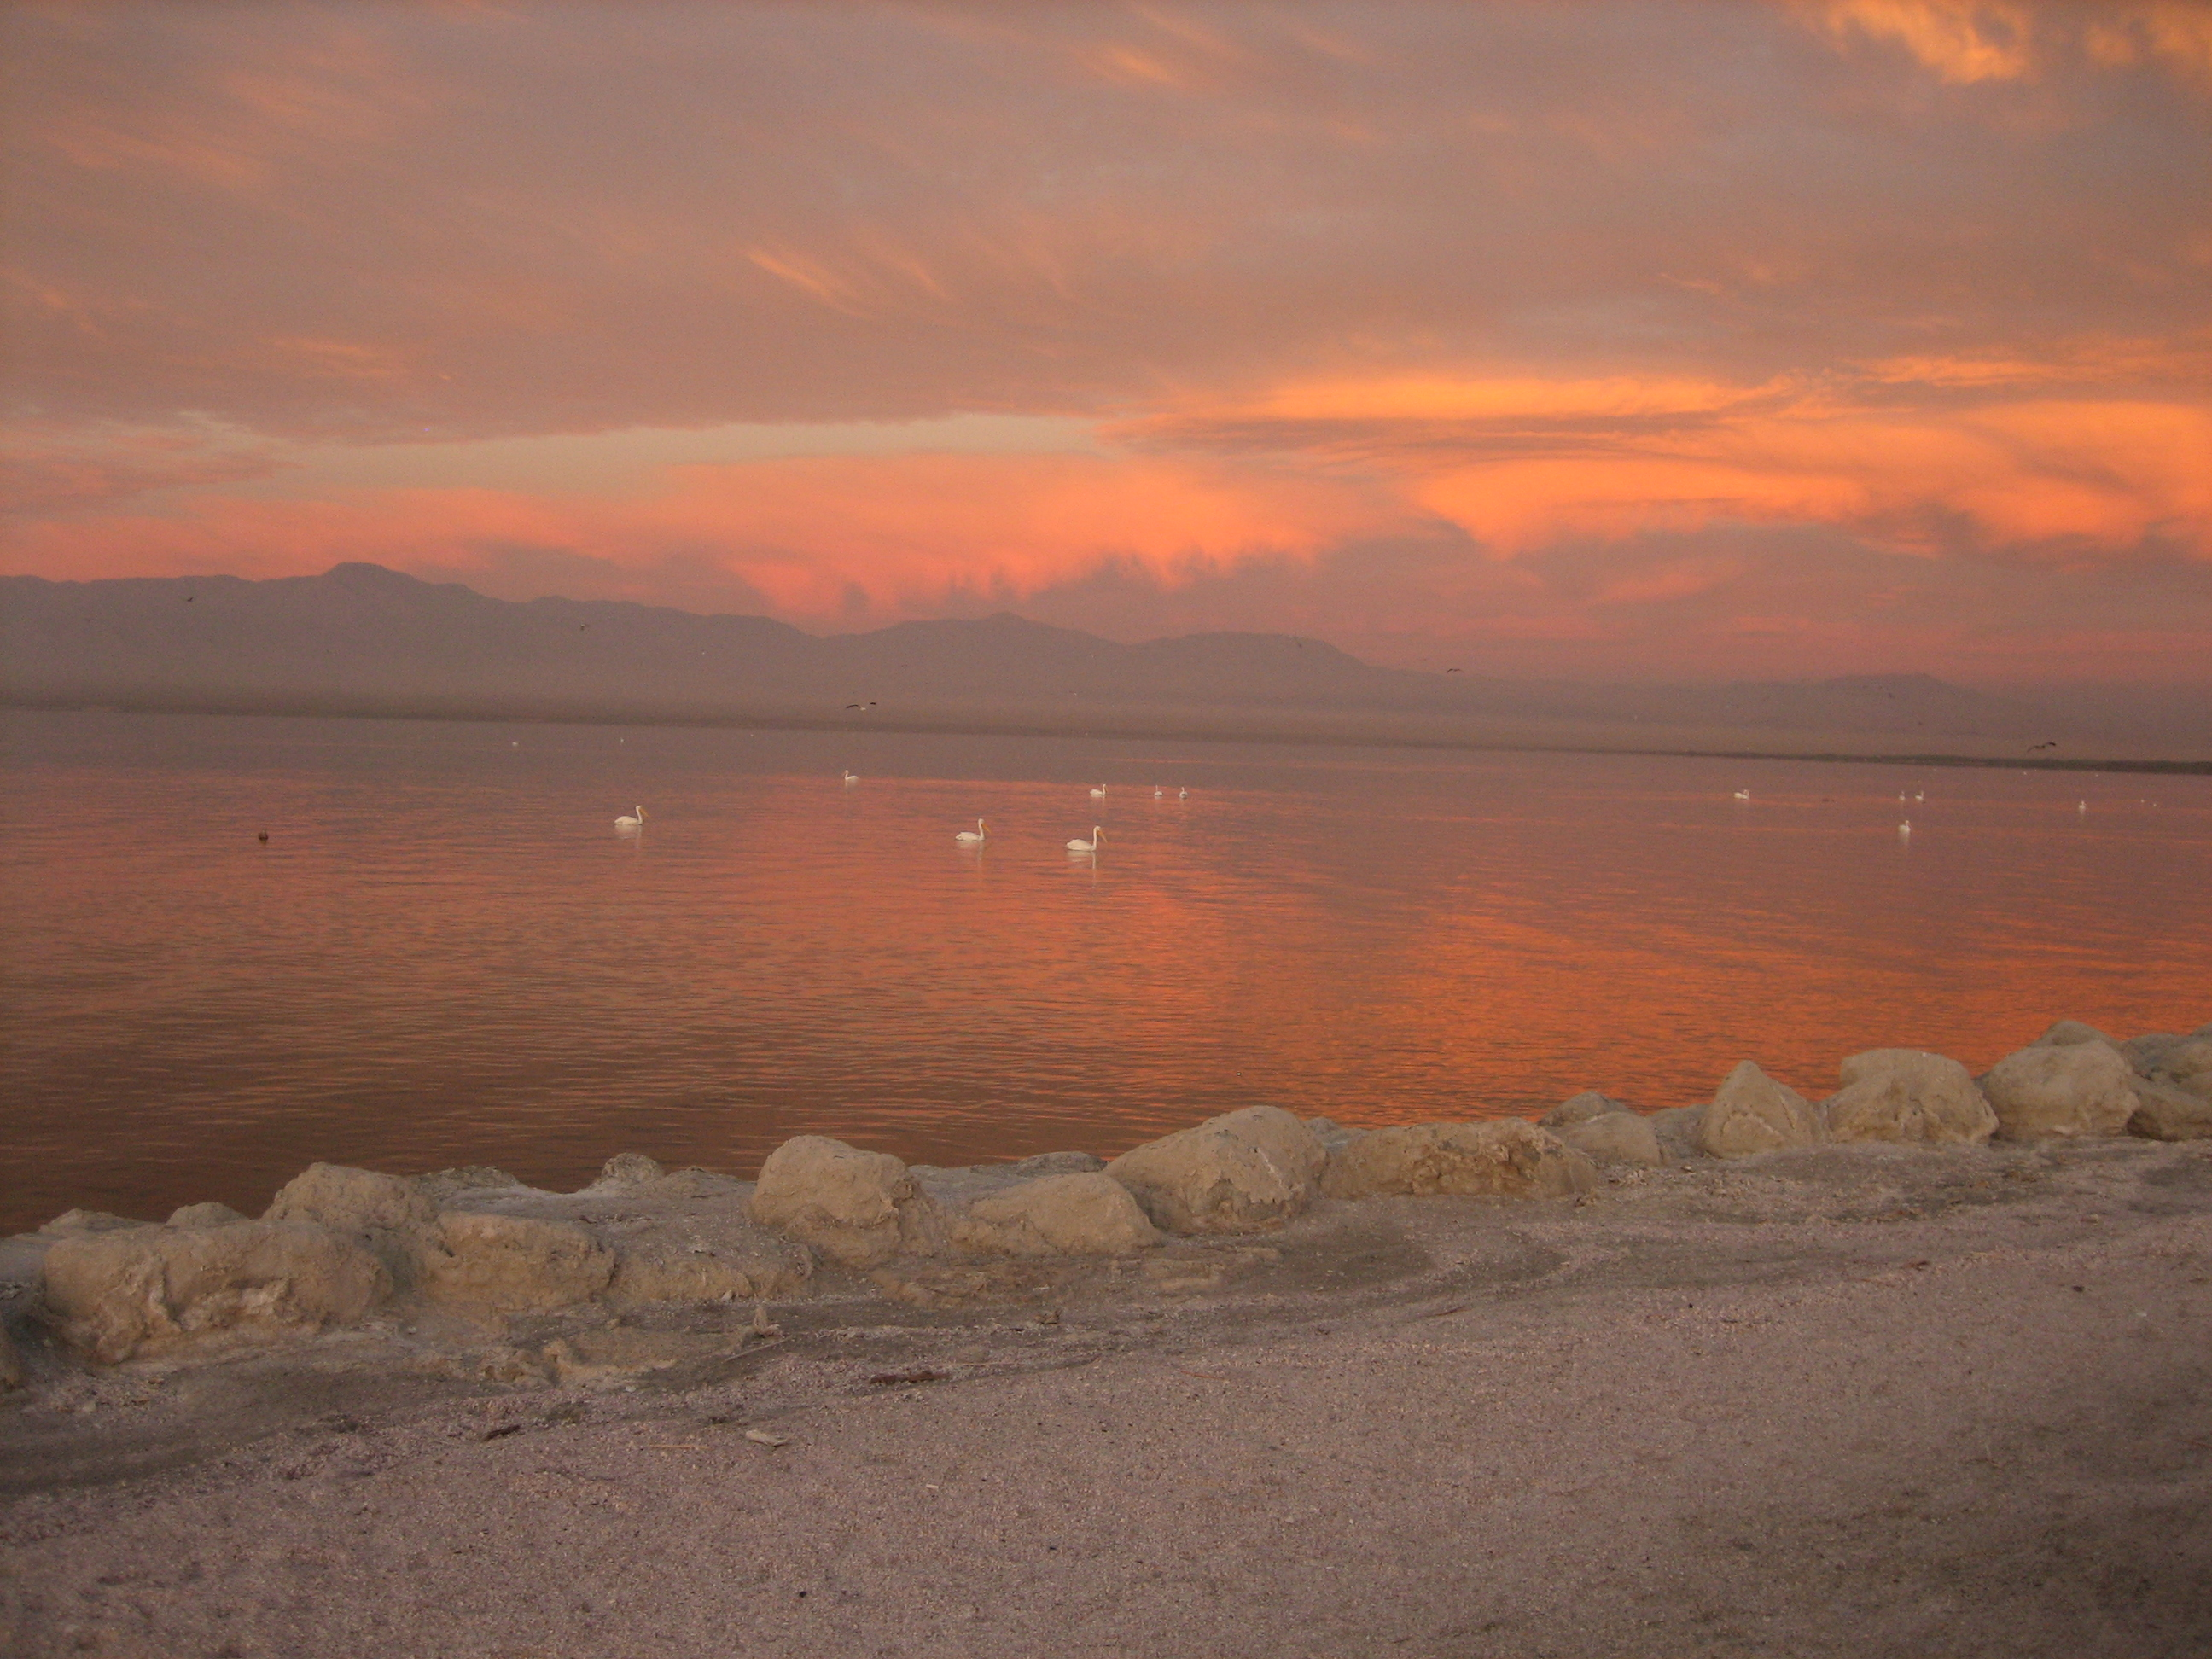 Sunrise at the Salton Sea as seen from my campground